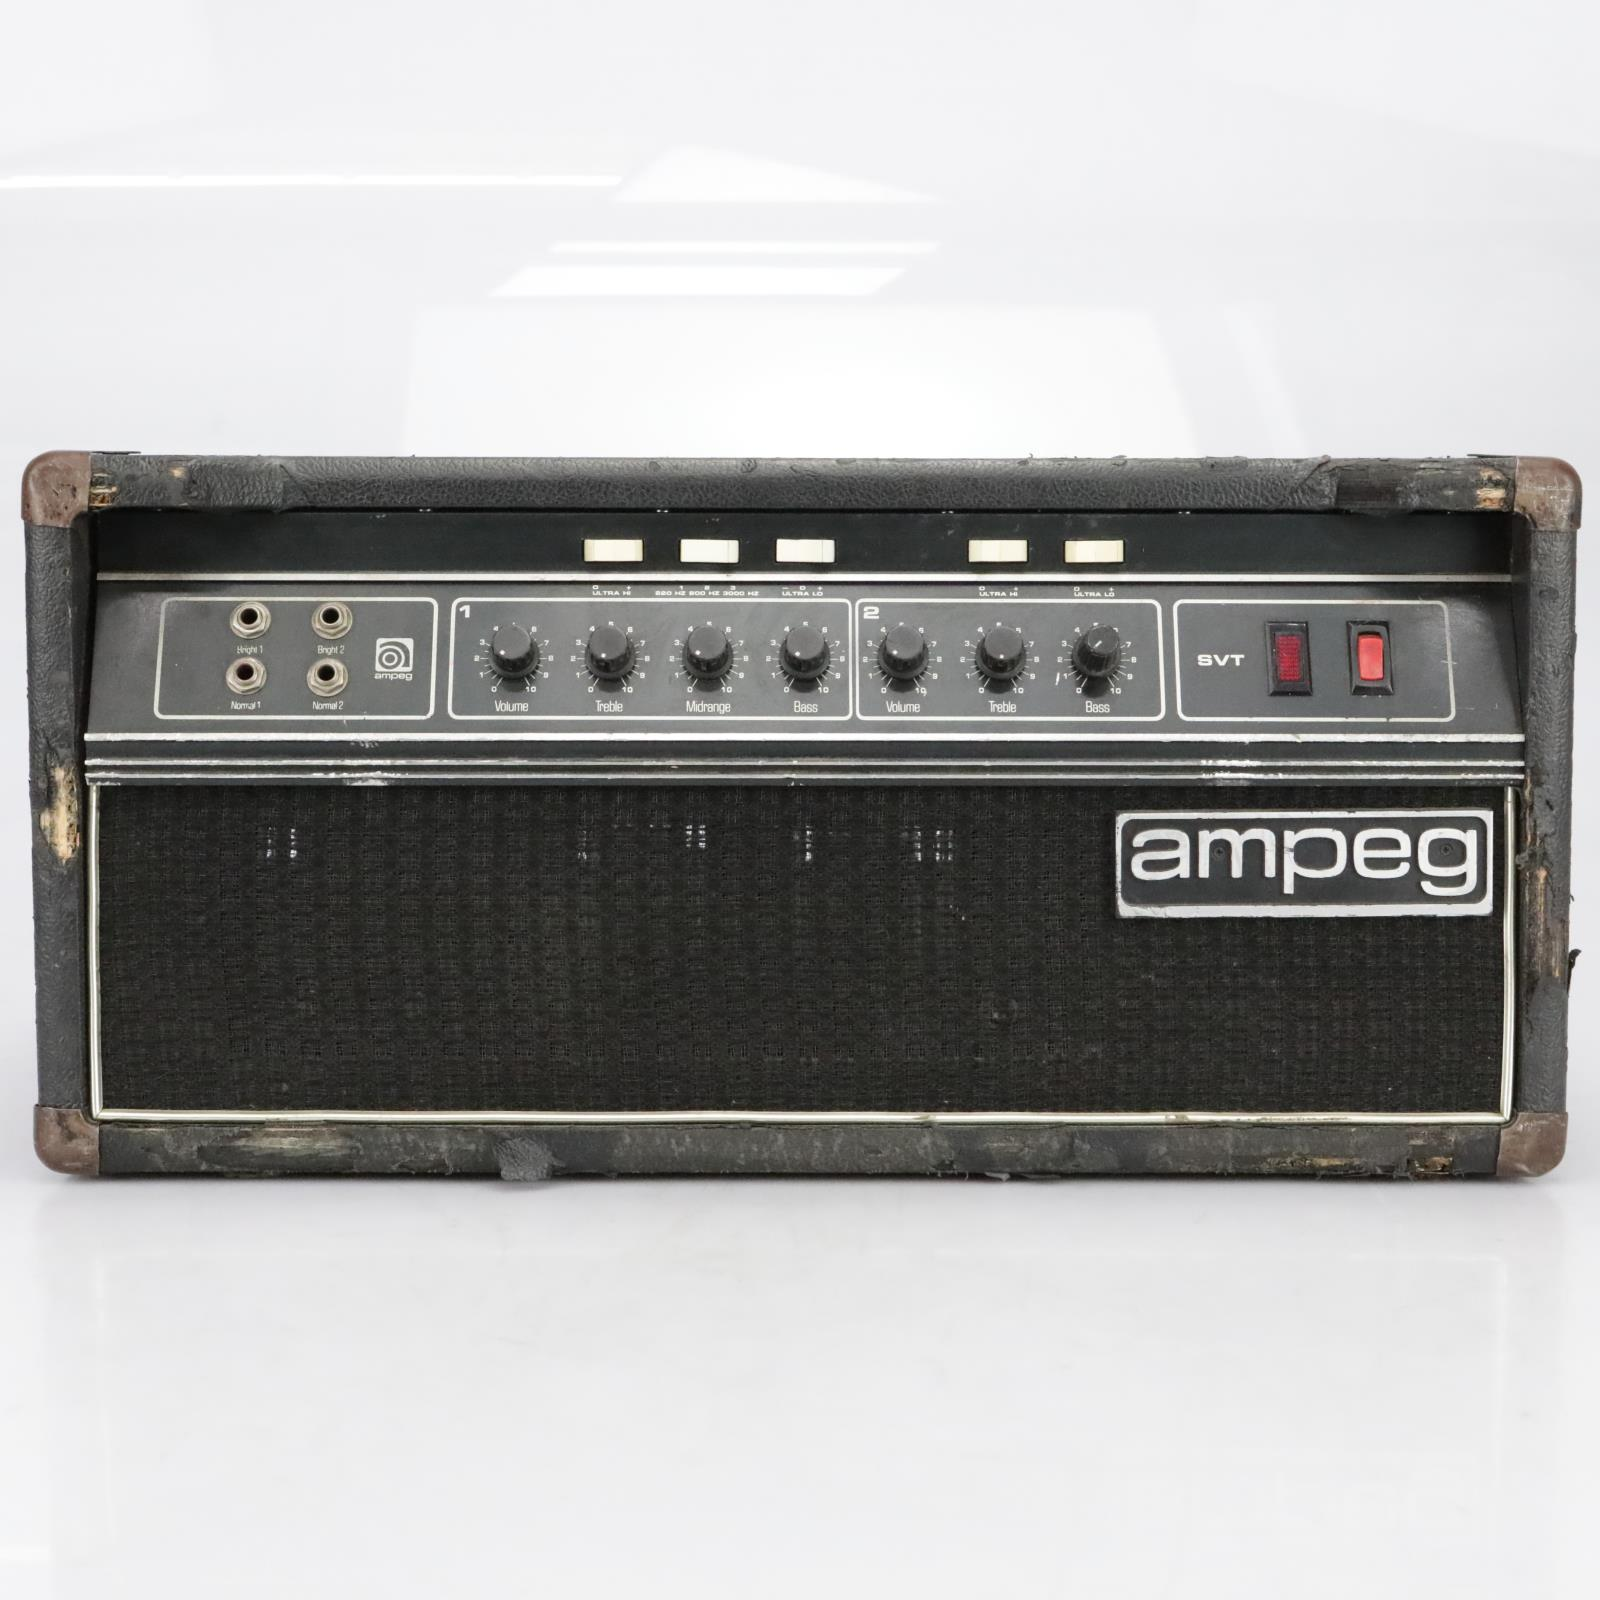 Ampeg SVT 4 Input 2 channel Bass Amplifier Head Made in USA #40794